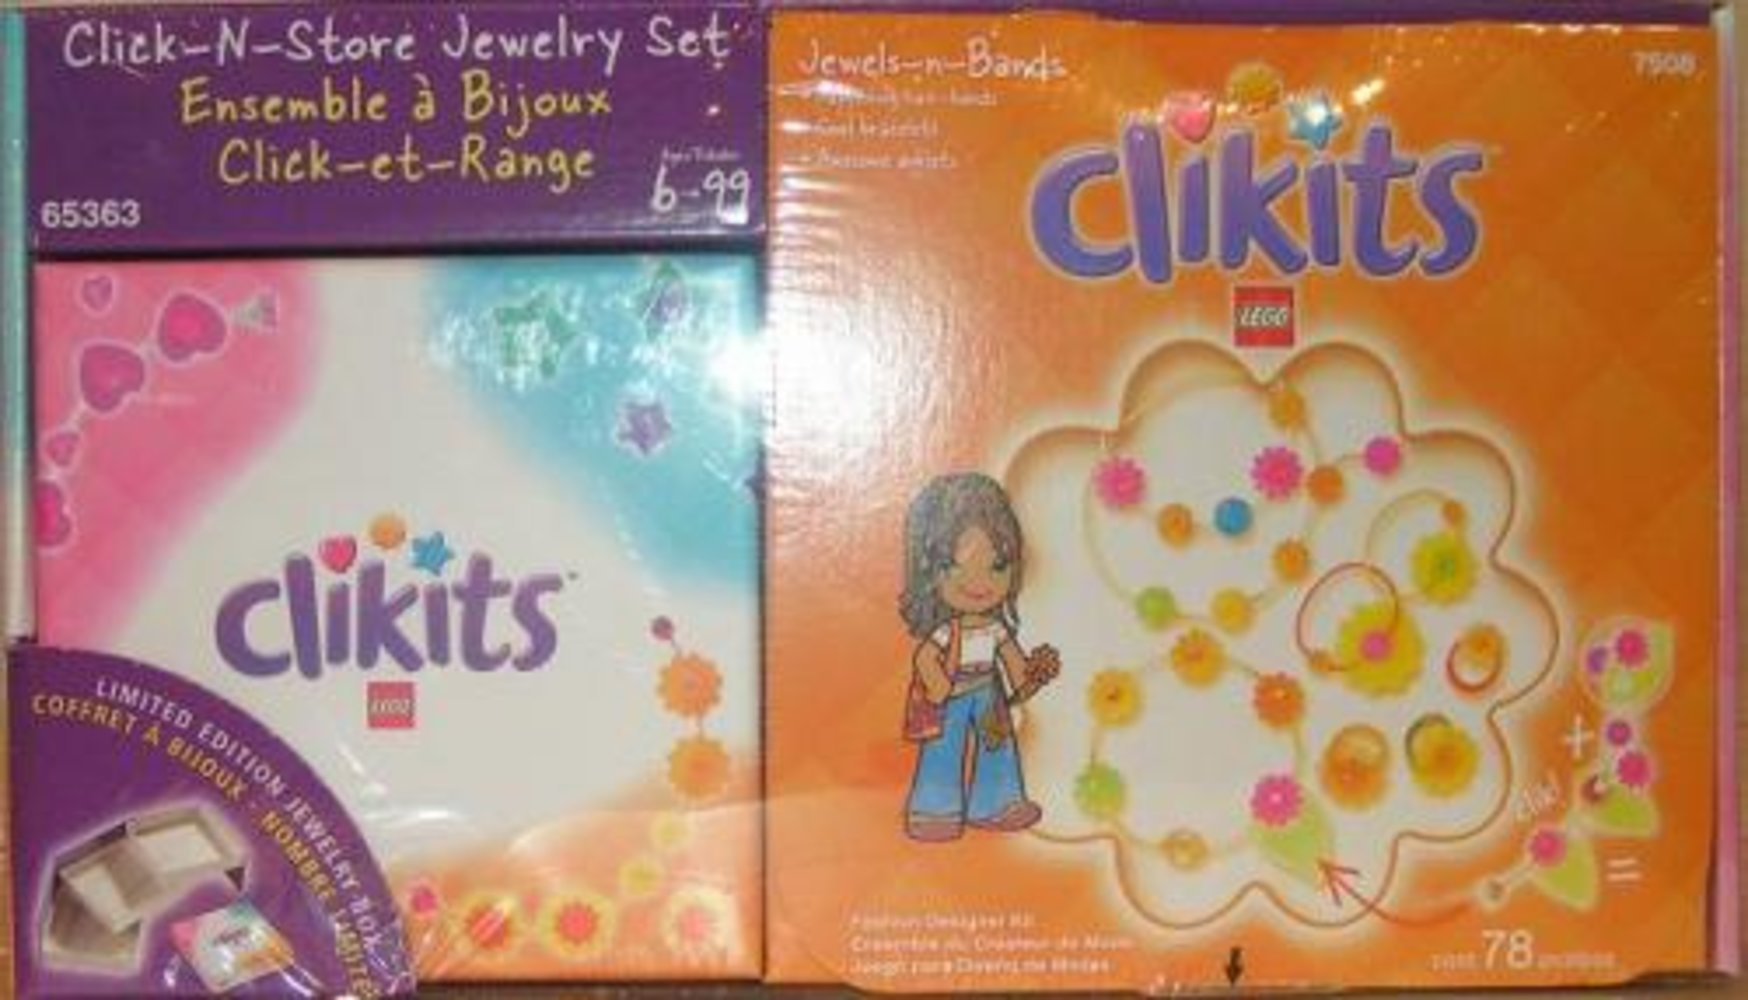 Jewels-n-Bands Click-N-Store Jewelry Set Co-Pack (7508 with jewelry box)